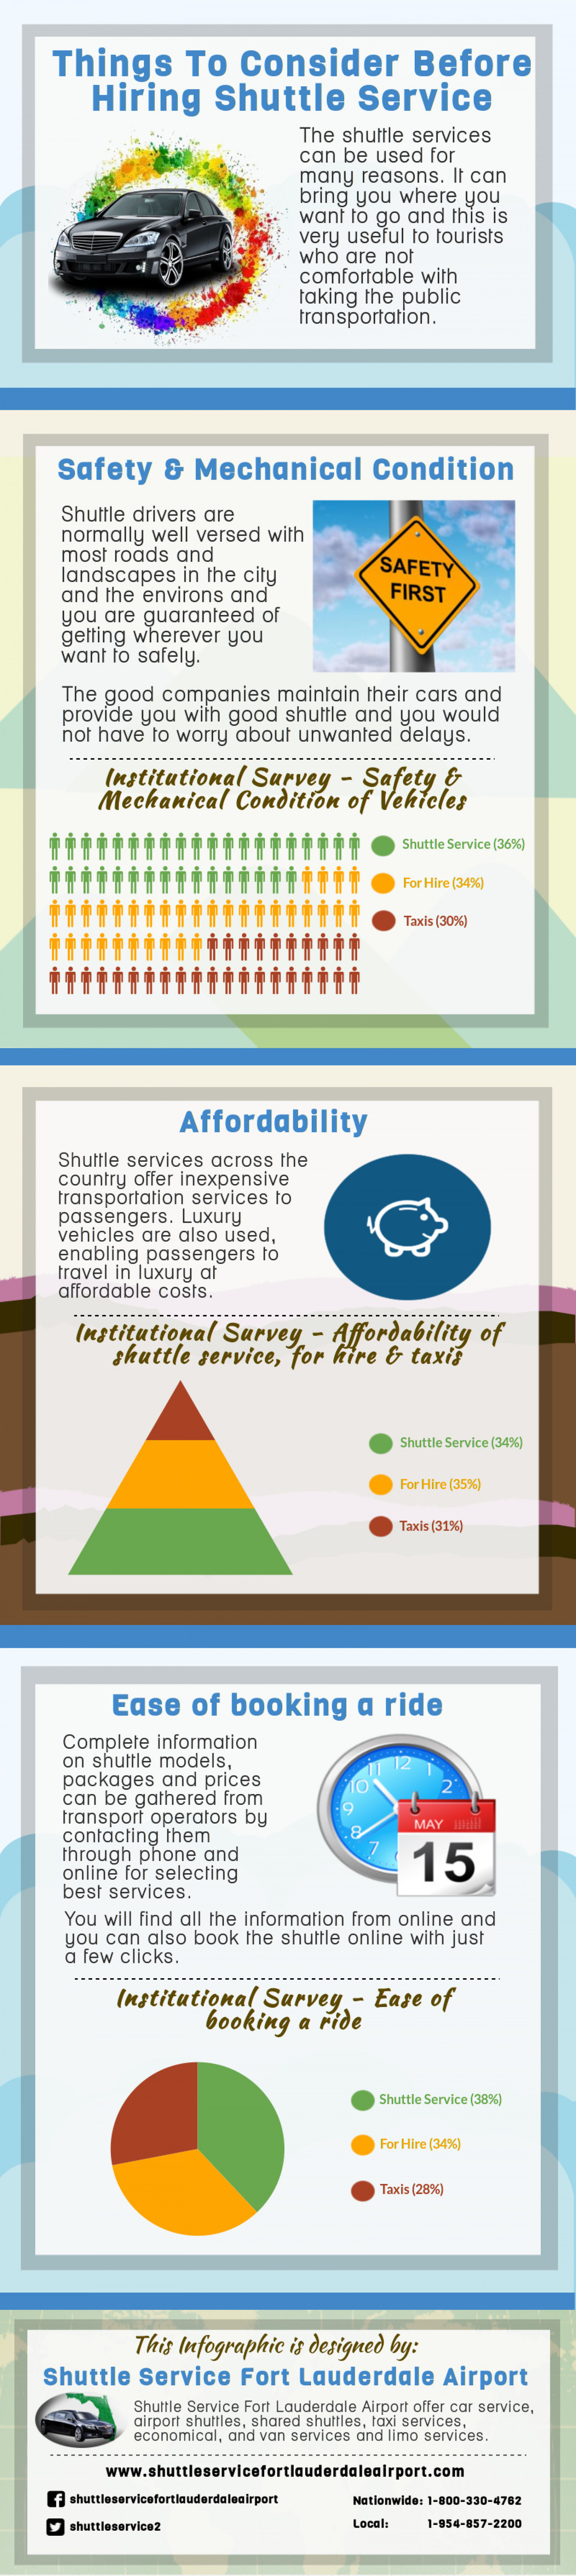 Things To Consider Before Hiring Shuttle Service Infographic